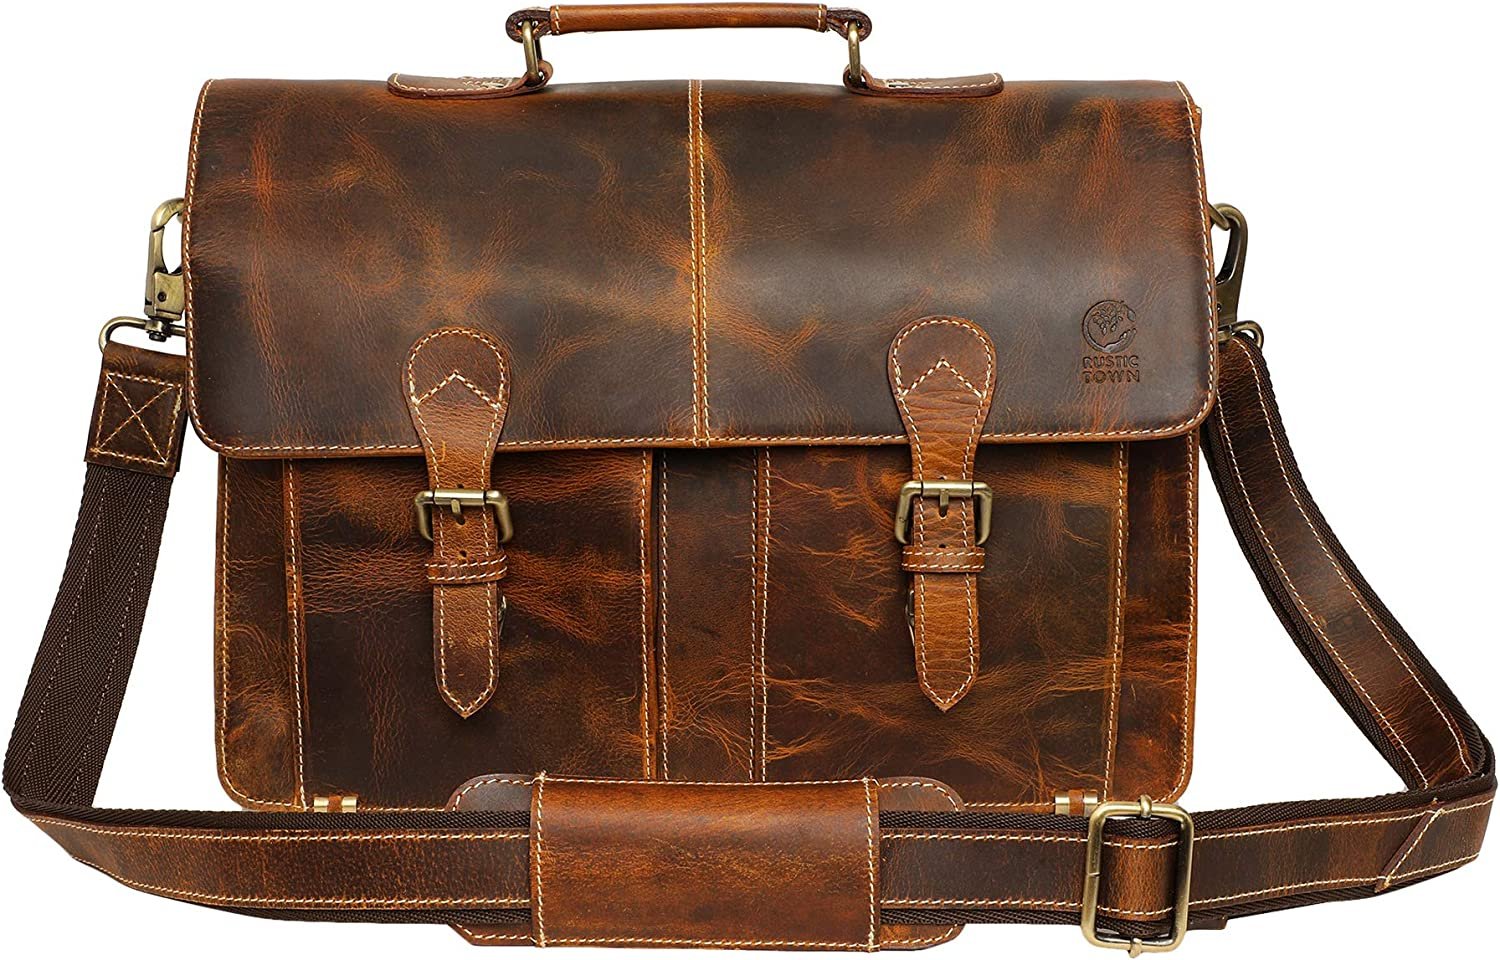 Antique Walrus skin leather satchel briefcase attach\u00e9 messenger bag rustic worn patina travel luggage hipster steampunk accessory